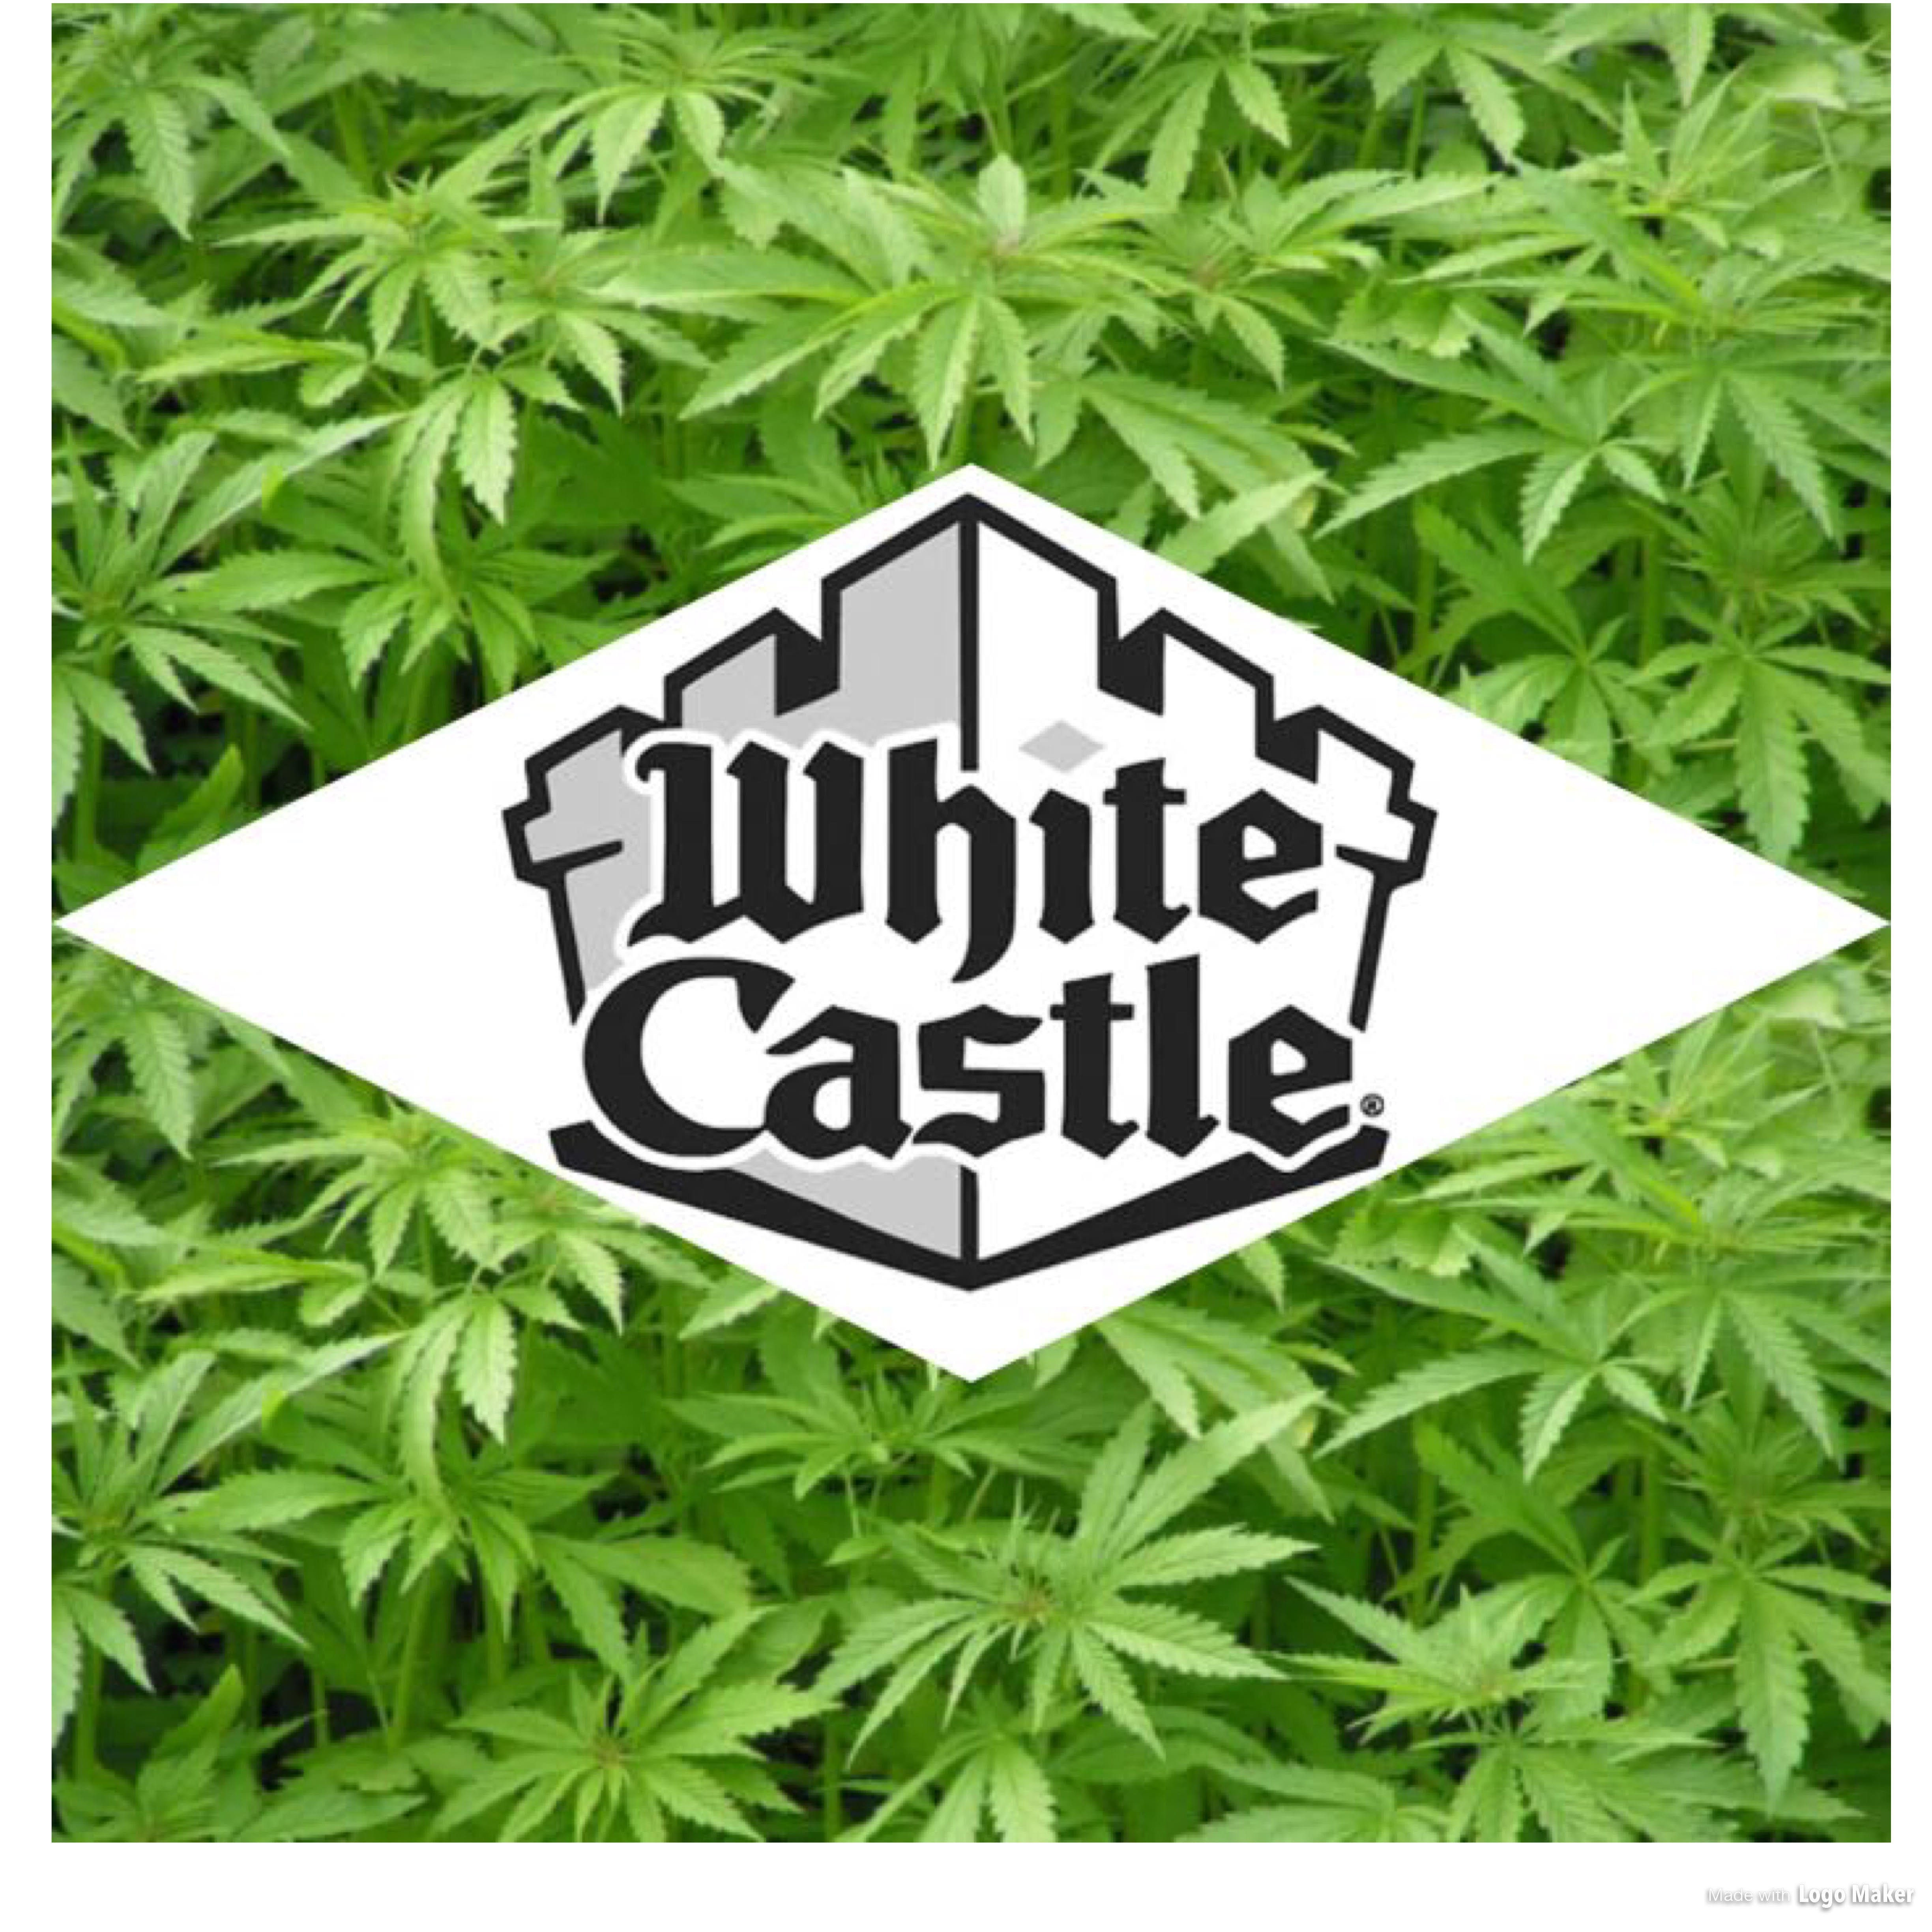 White Castle - Medical Marijuana Doctors - Cannabizme.com